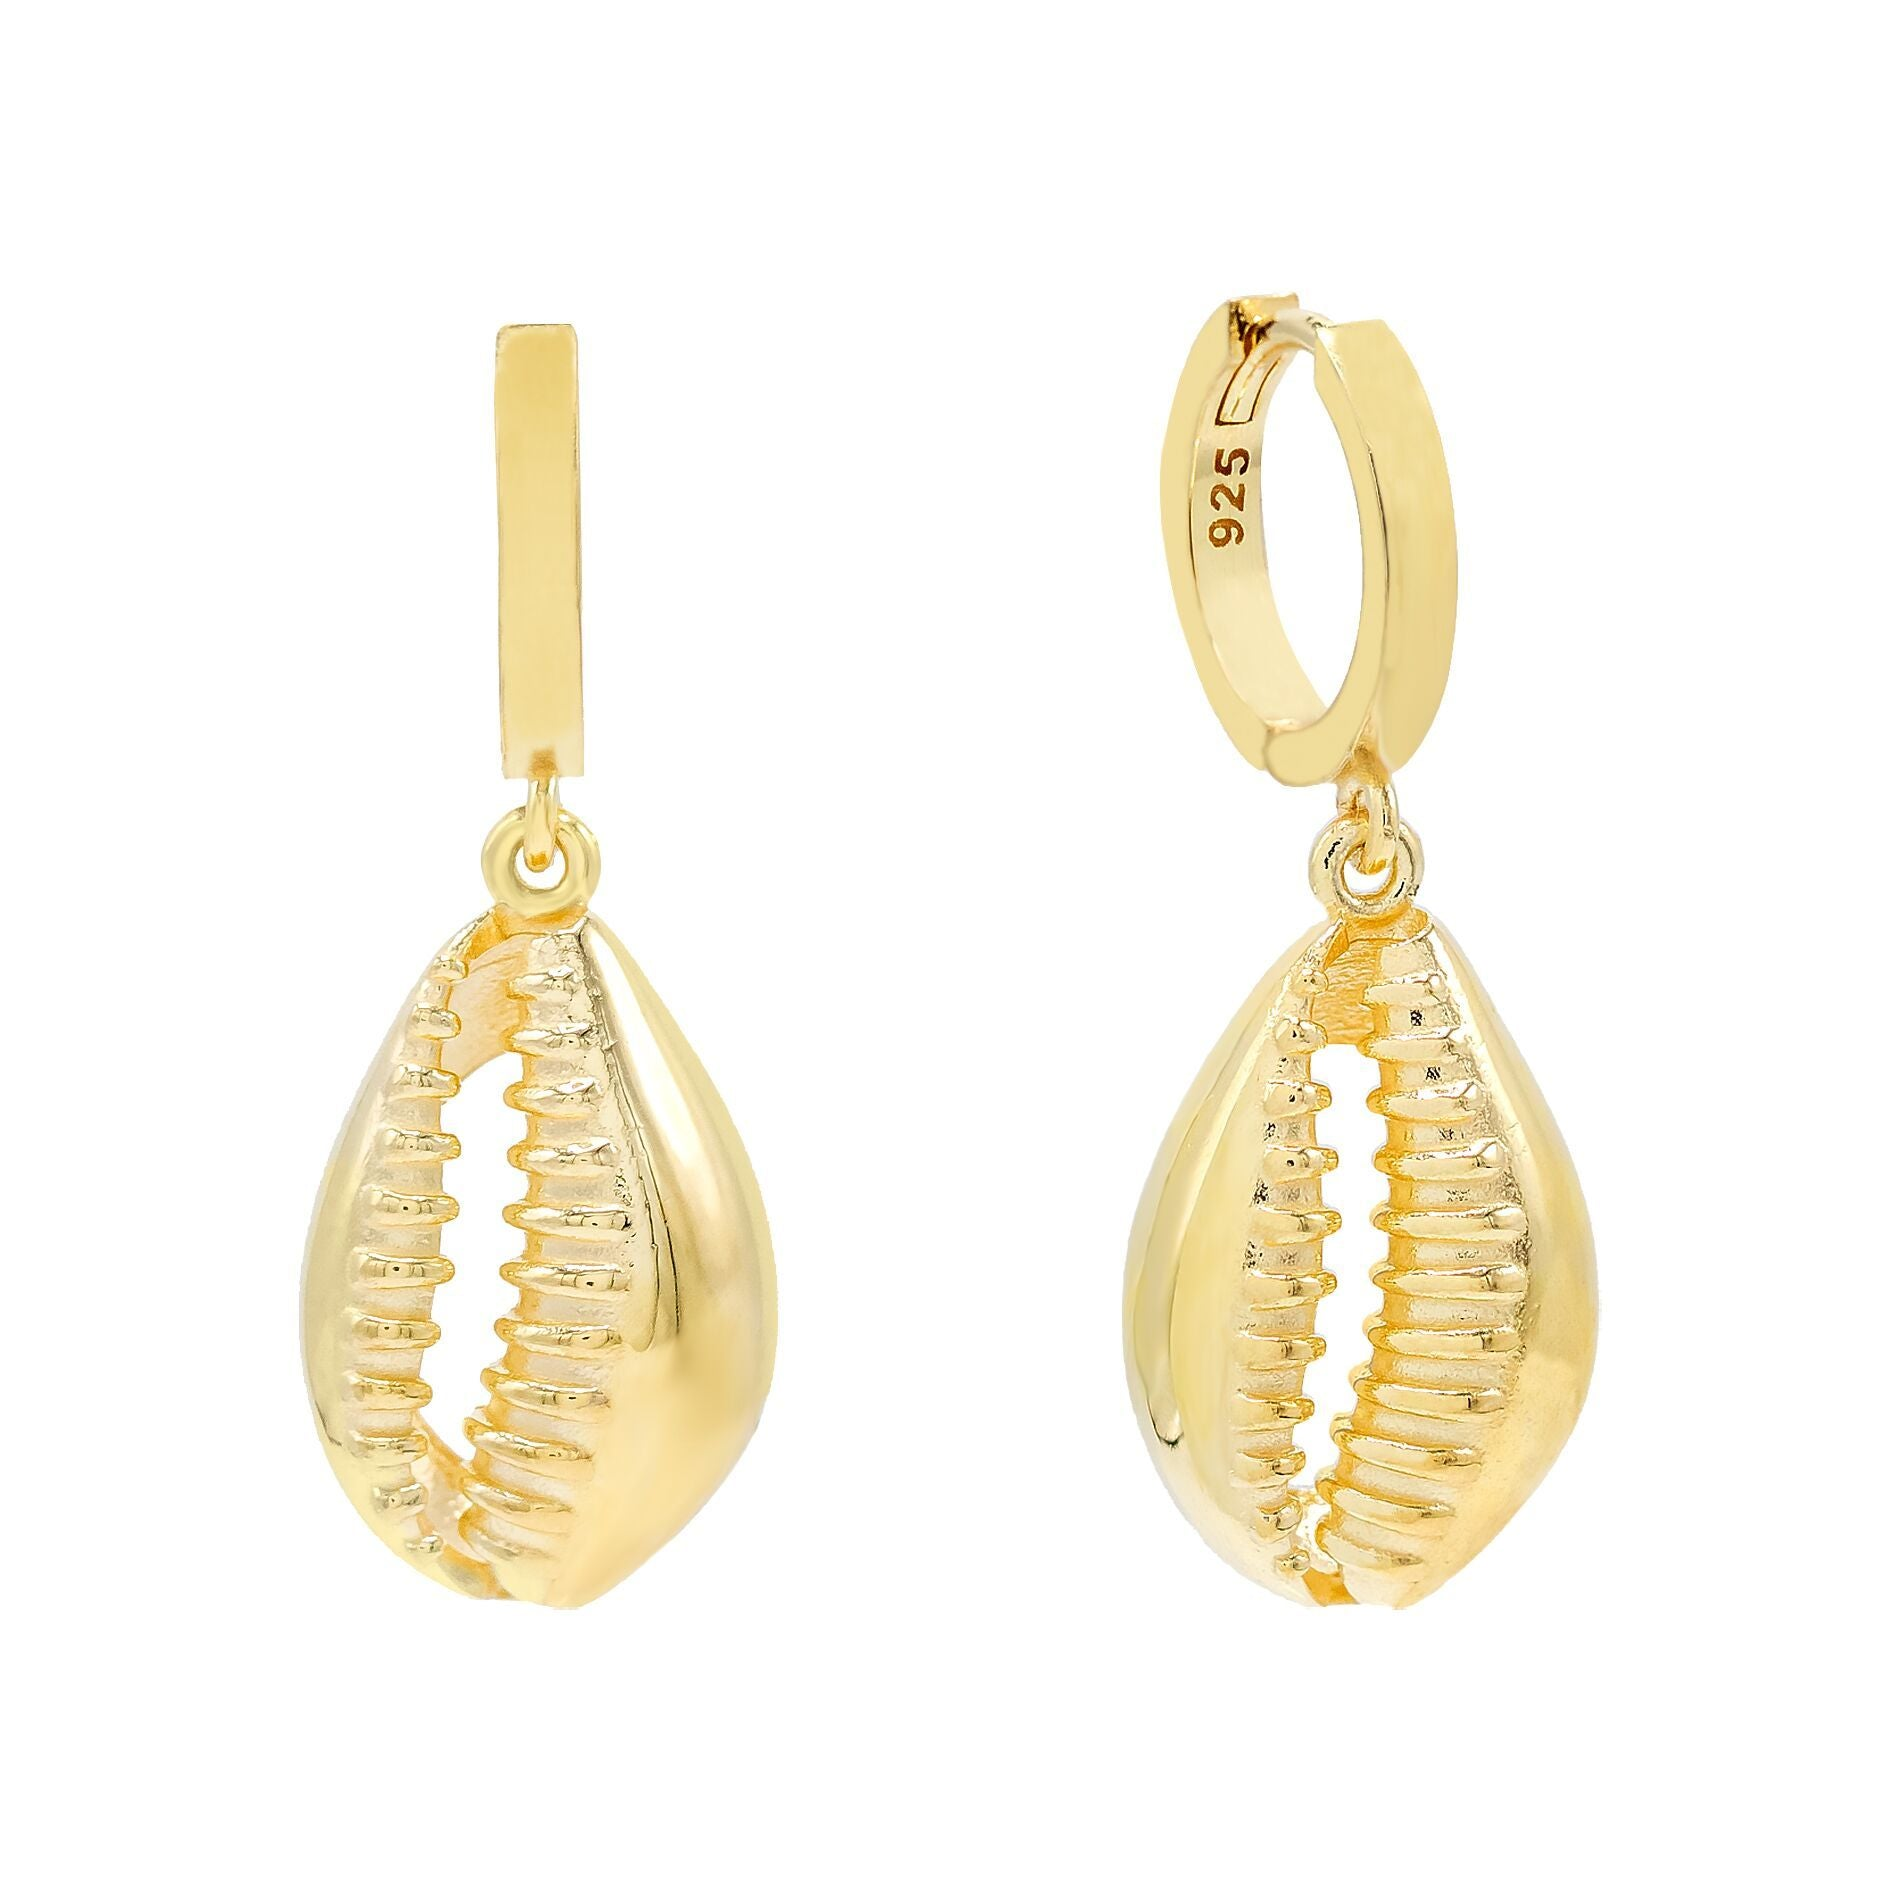 Shell Huggie Earring Gold | Urban Accessories NYC